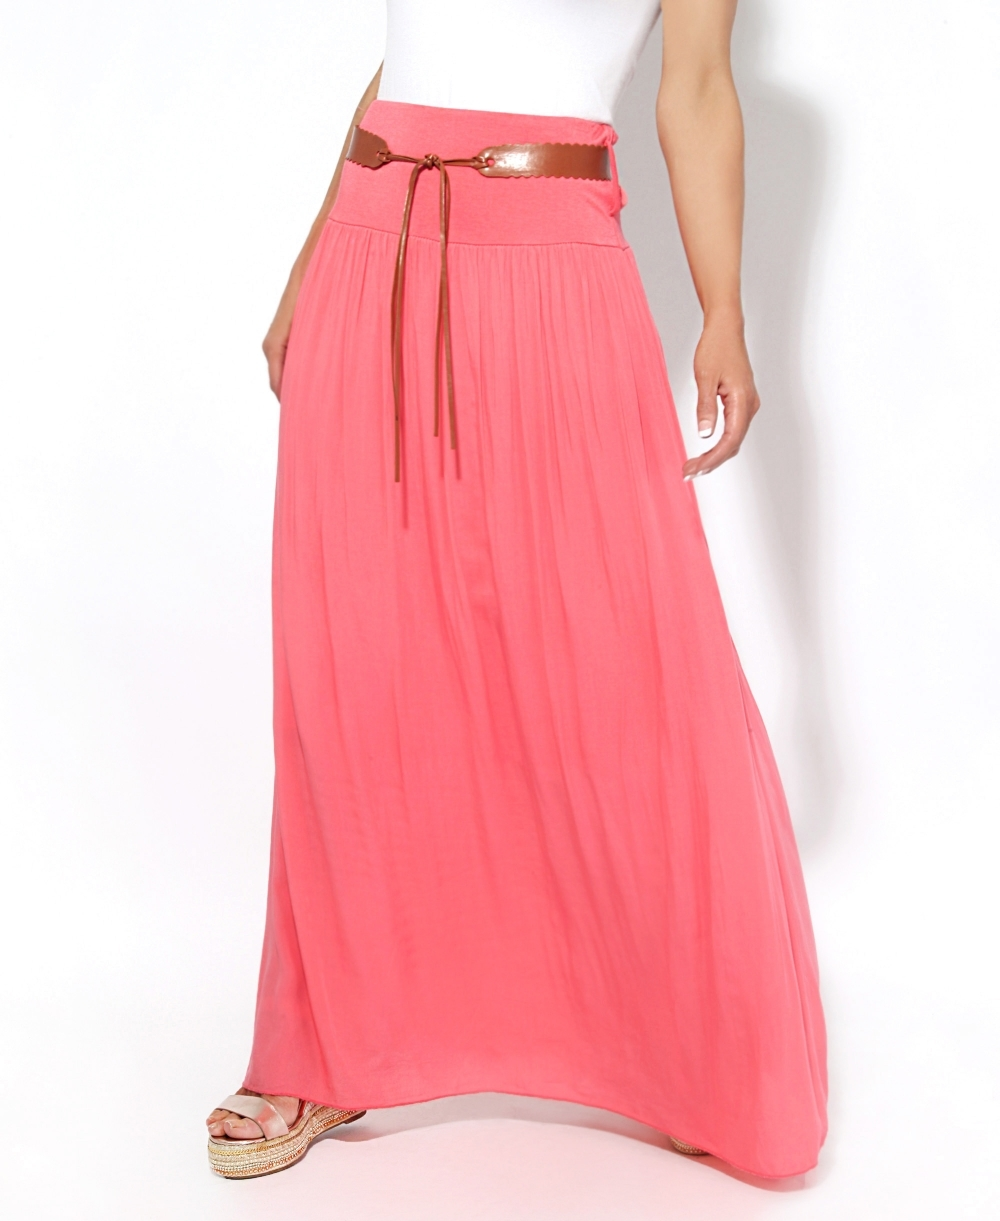 online store big clearance sale exceptional range of colors Tie Belted Boho Maxi Skirt